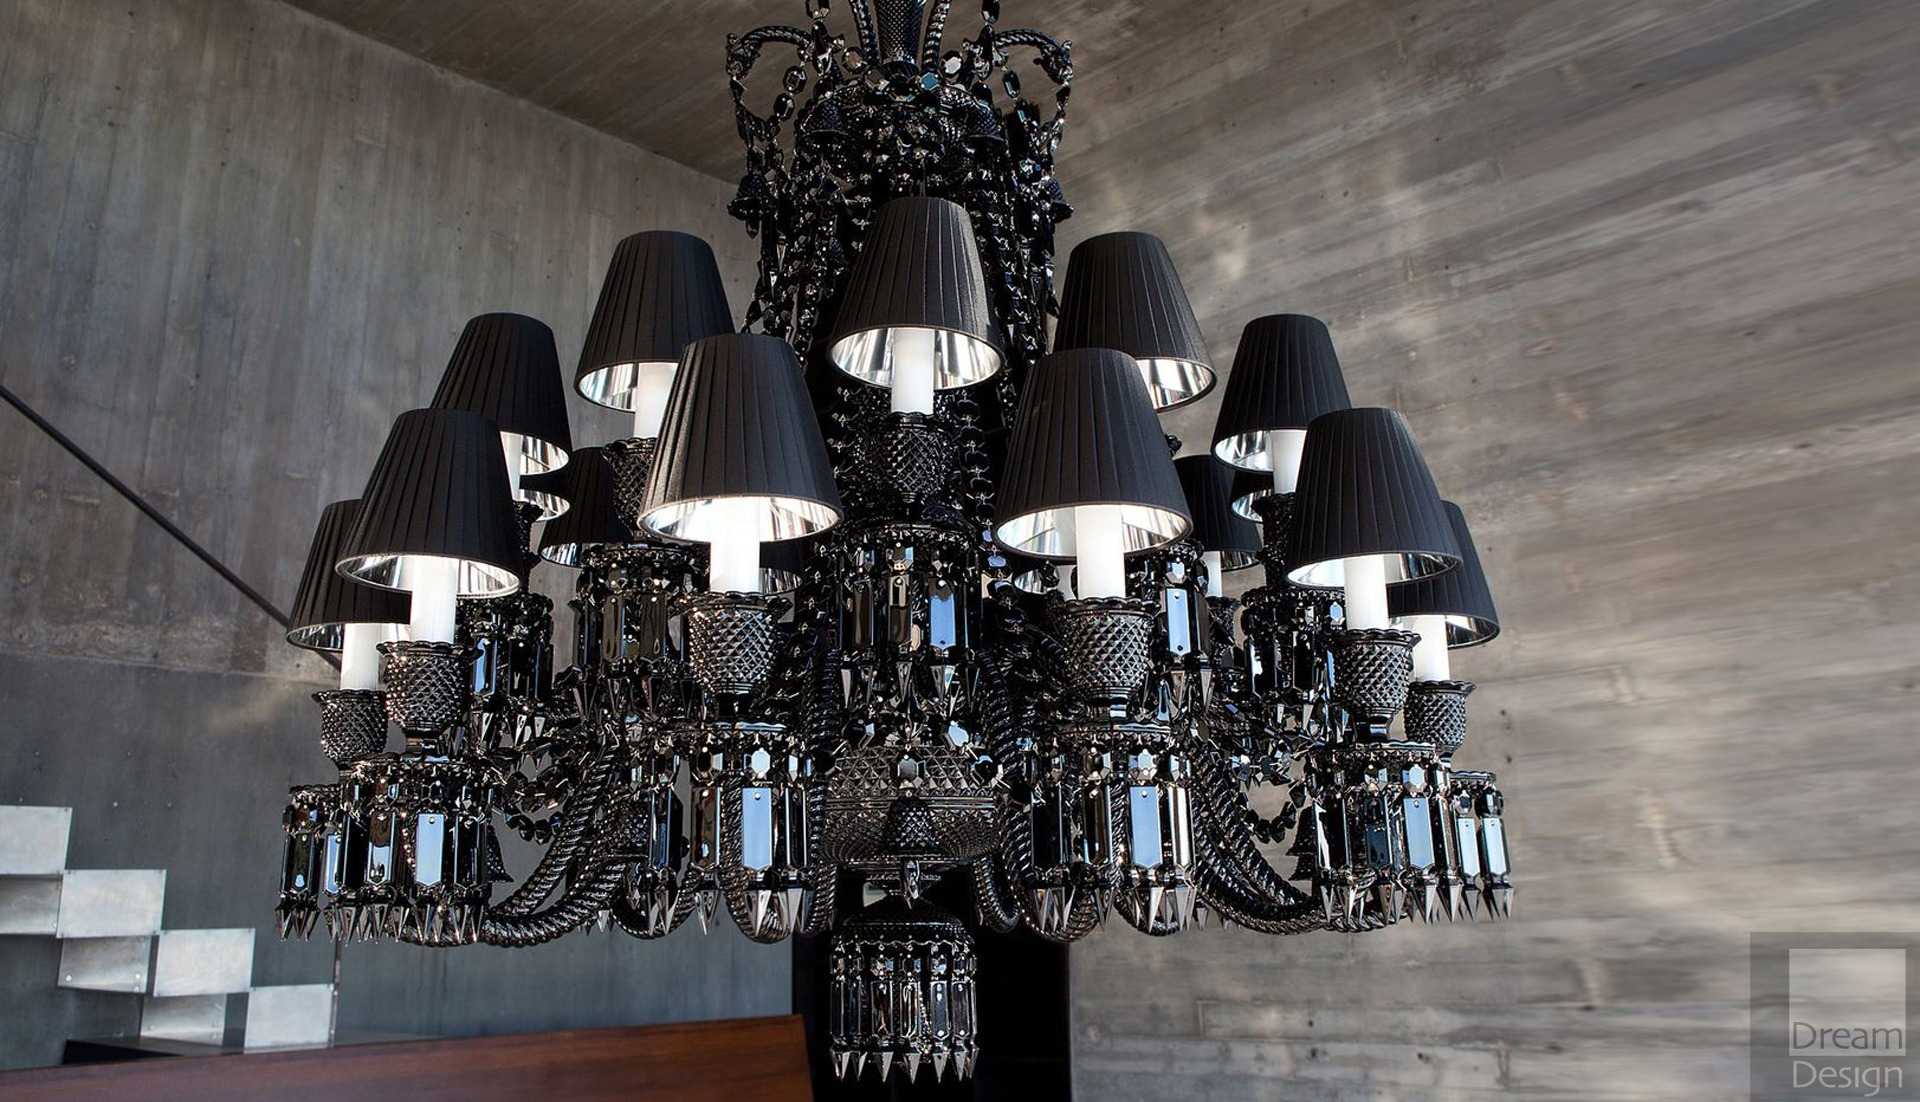 Previous; Next & Baccarat Zenith Noir Chandelier (24 lights) - Dream Design Interiors Ltd